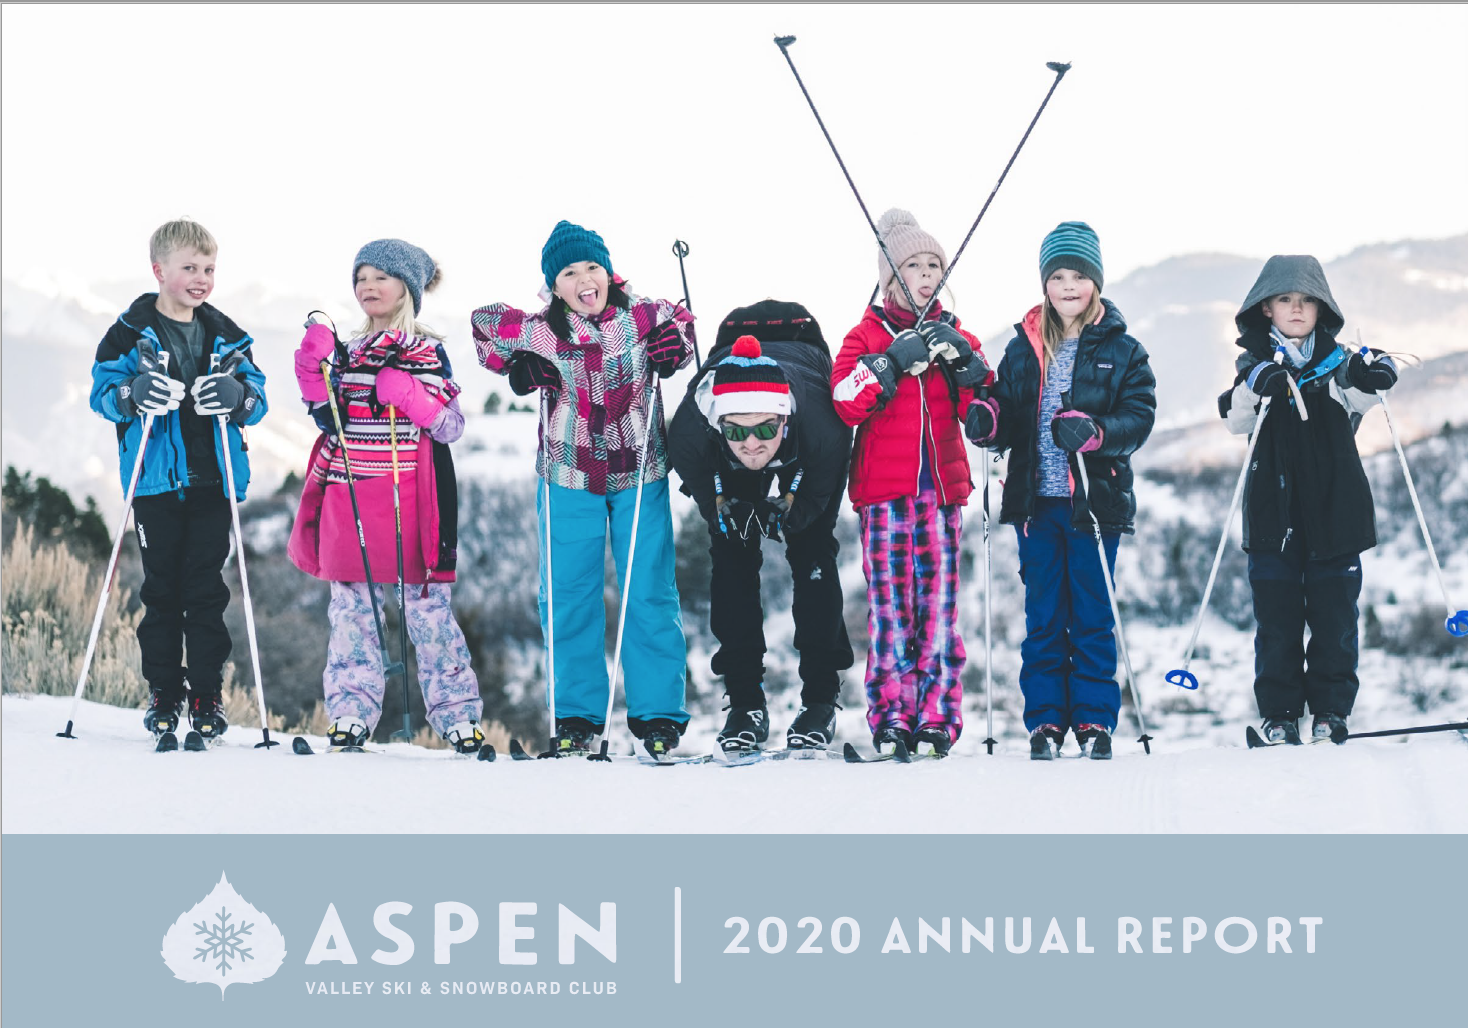 Aspen Valley Ski & Snowboard Club (AVSC) Annual Report